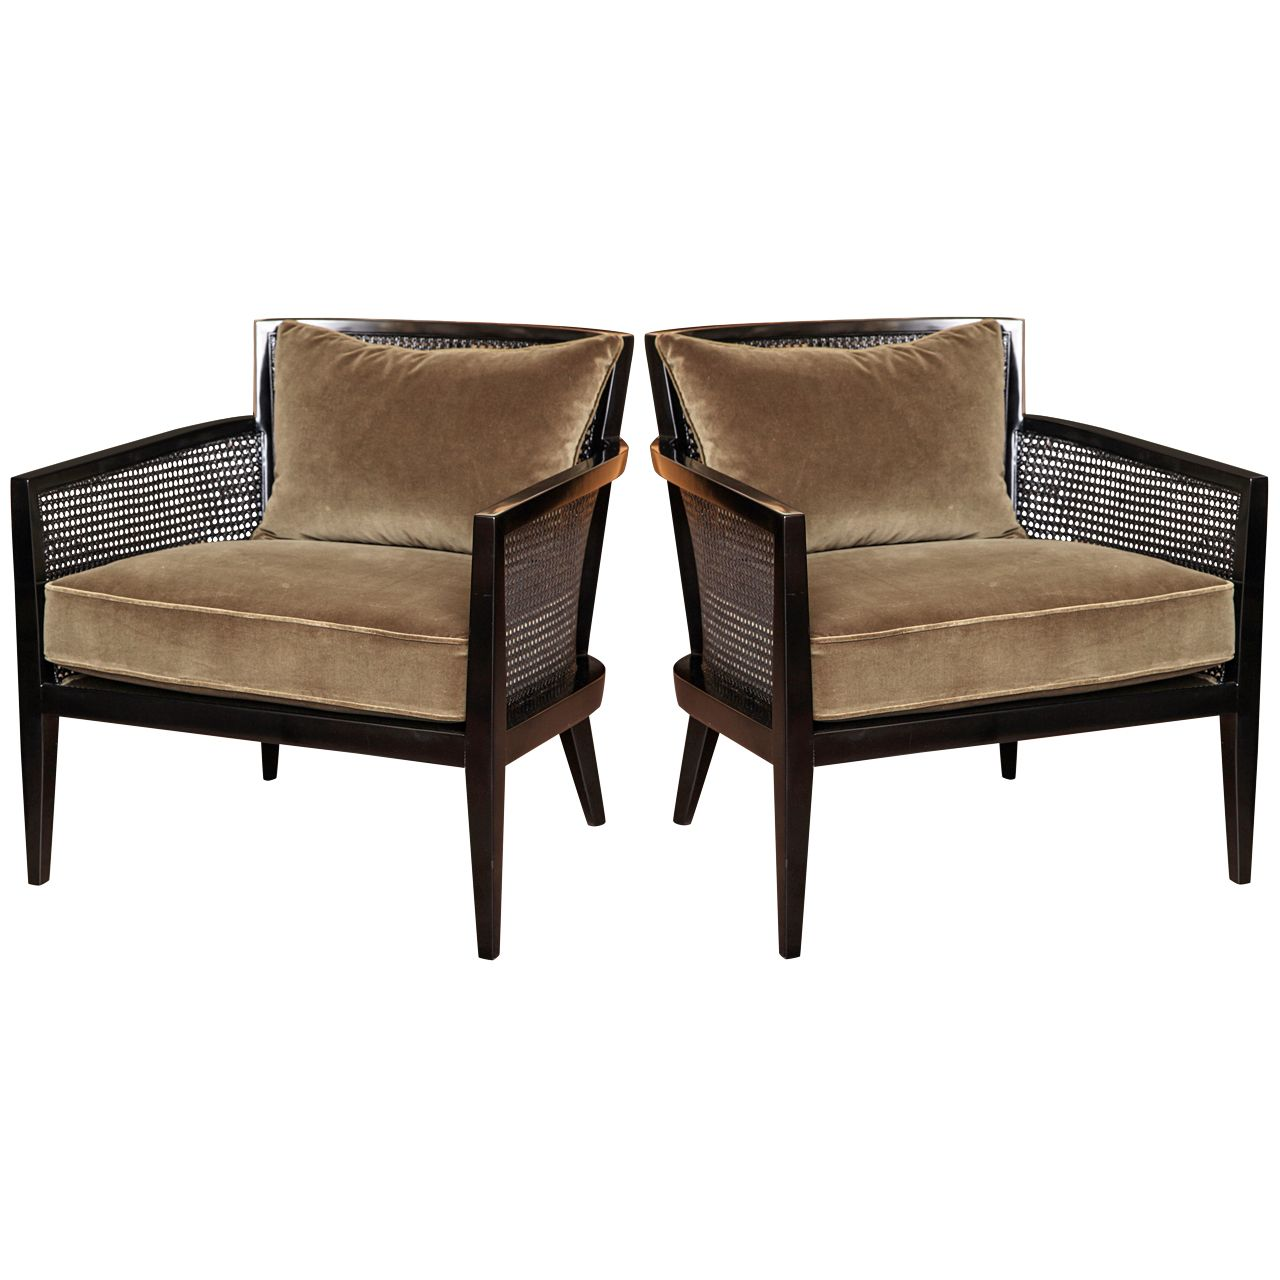 Pair Of Cane Armchairs By Harvey Probber c. 1960 | Sillones